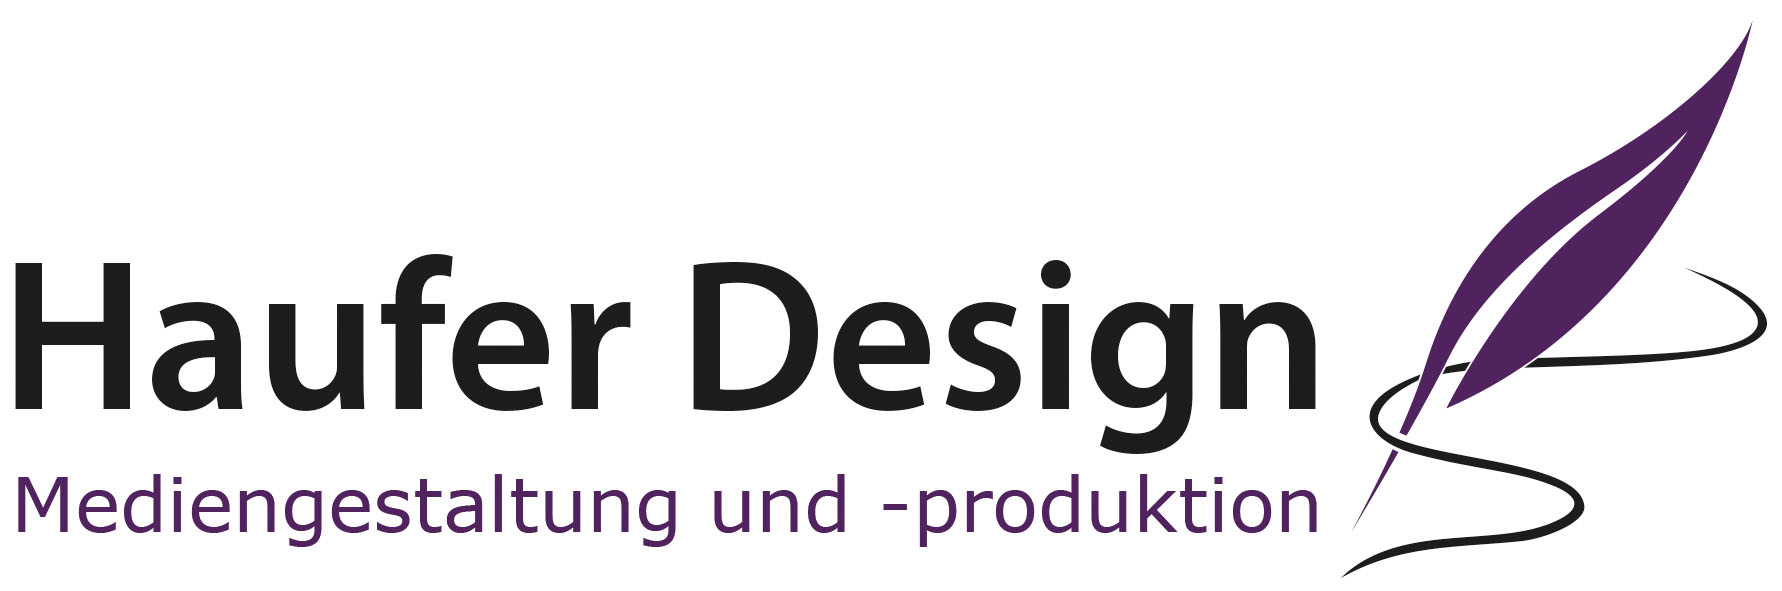 Haufer Design - Mediengestaltung und -produktion